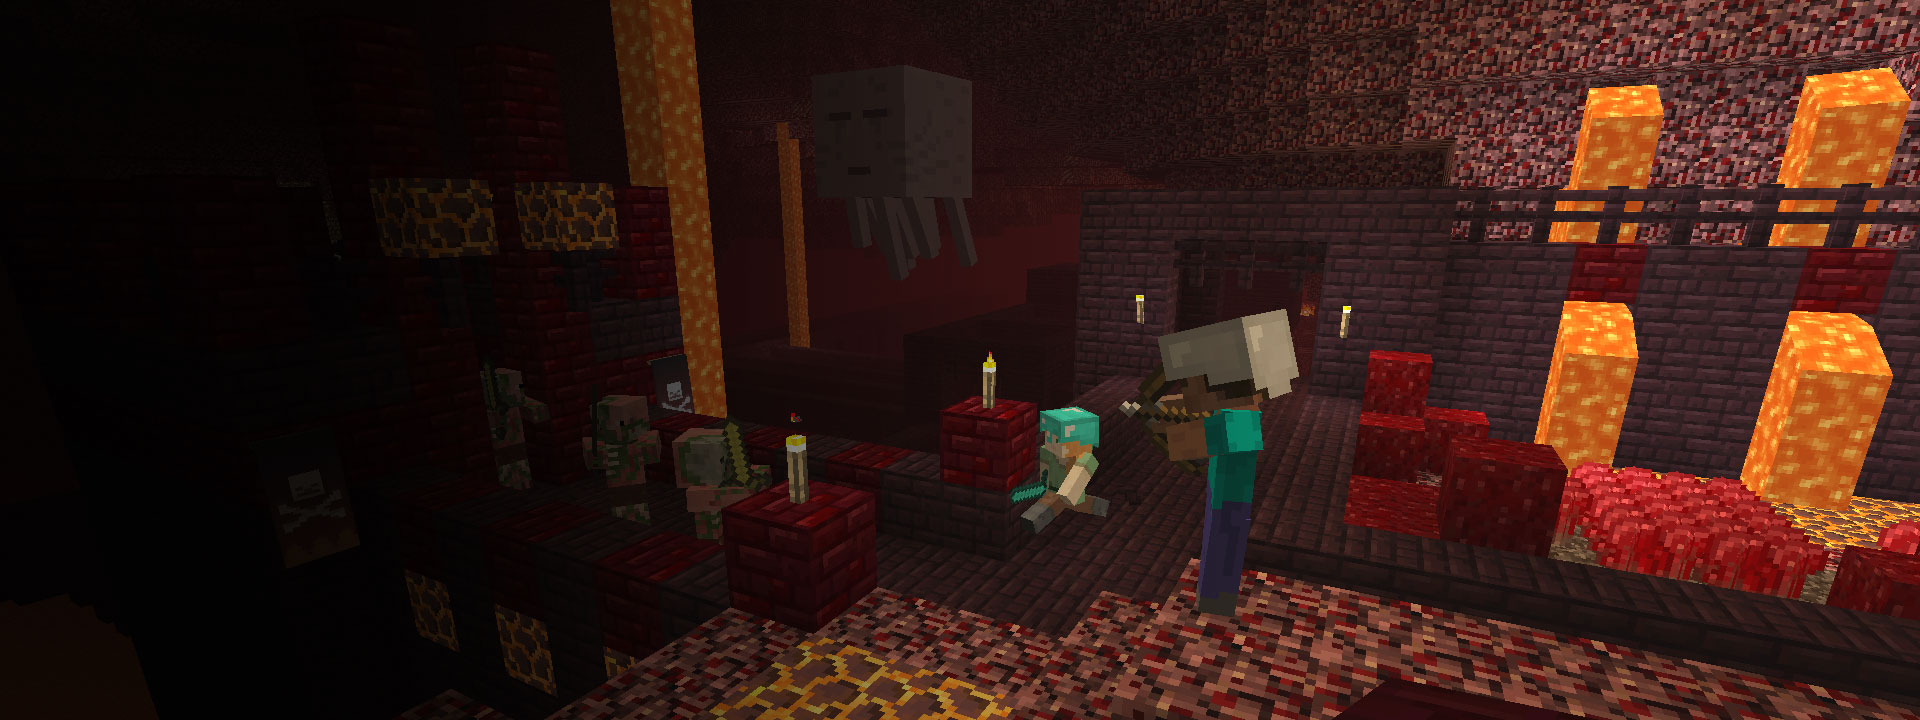 Two player characters engaged in battle with zombie pigmen.